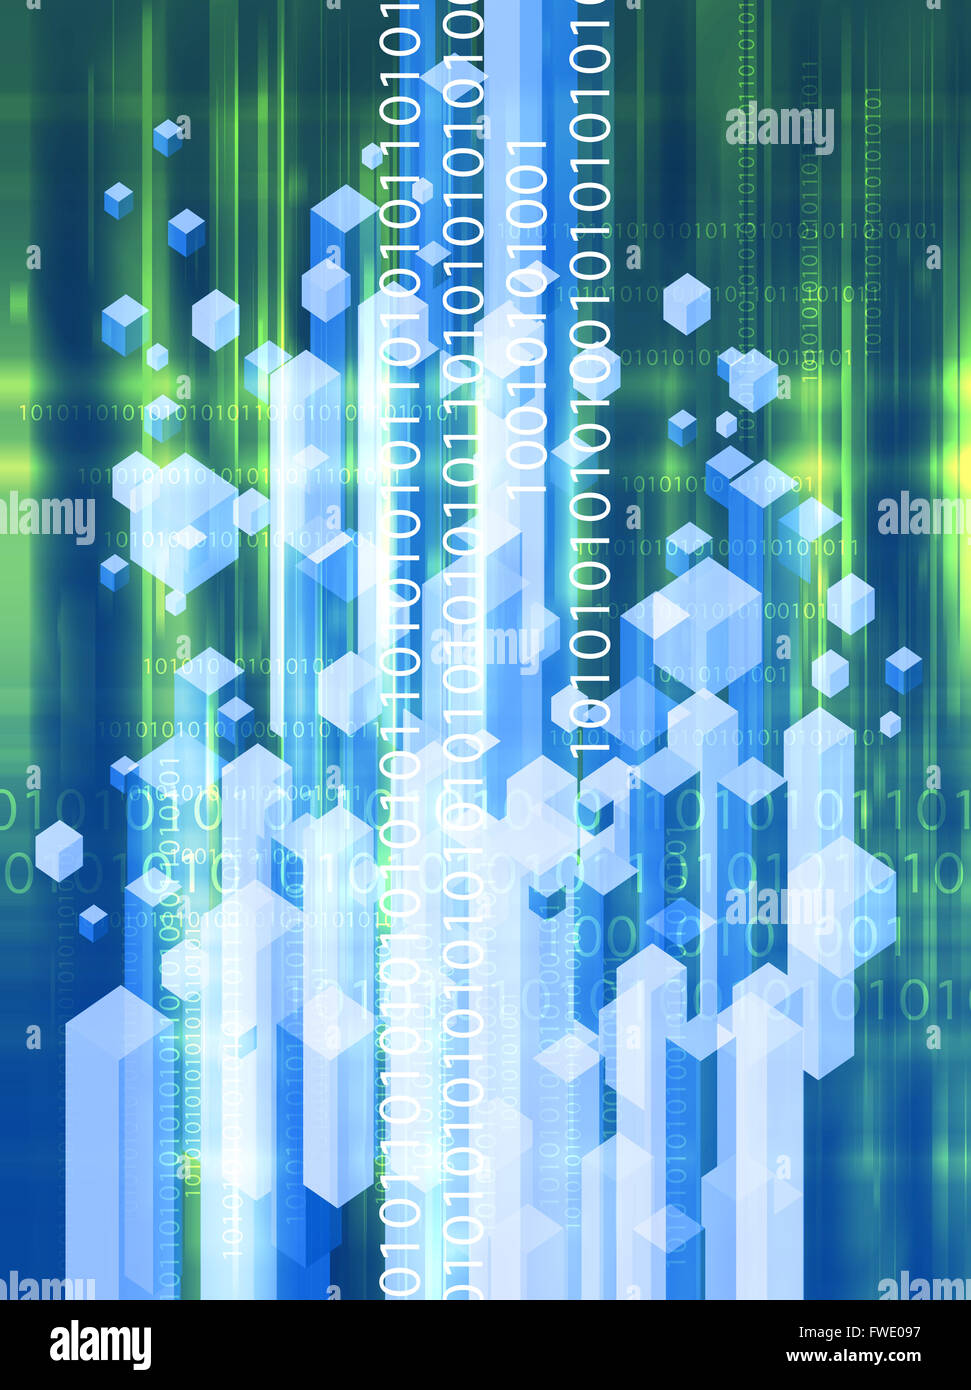 Binary Code Stock Photos Images Alamy Abstact Background With Circuit Board And Technology Abstract Image